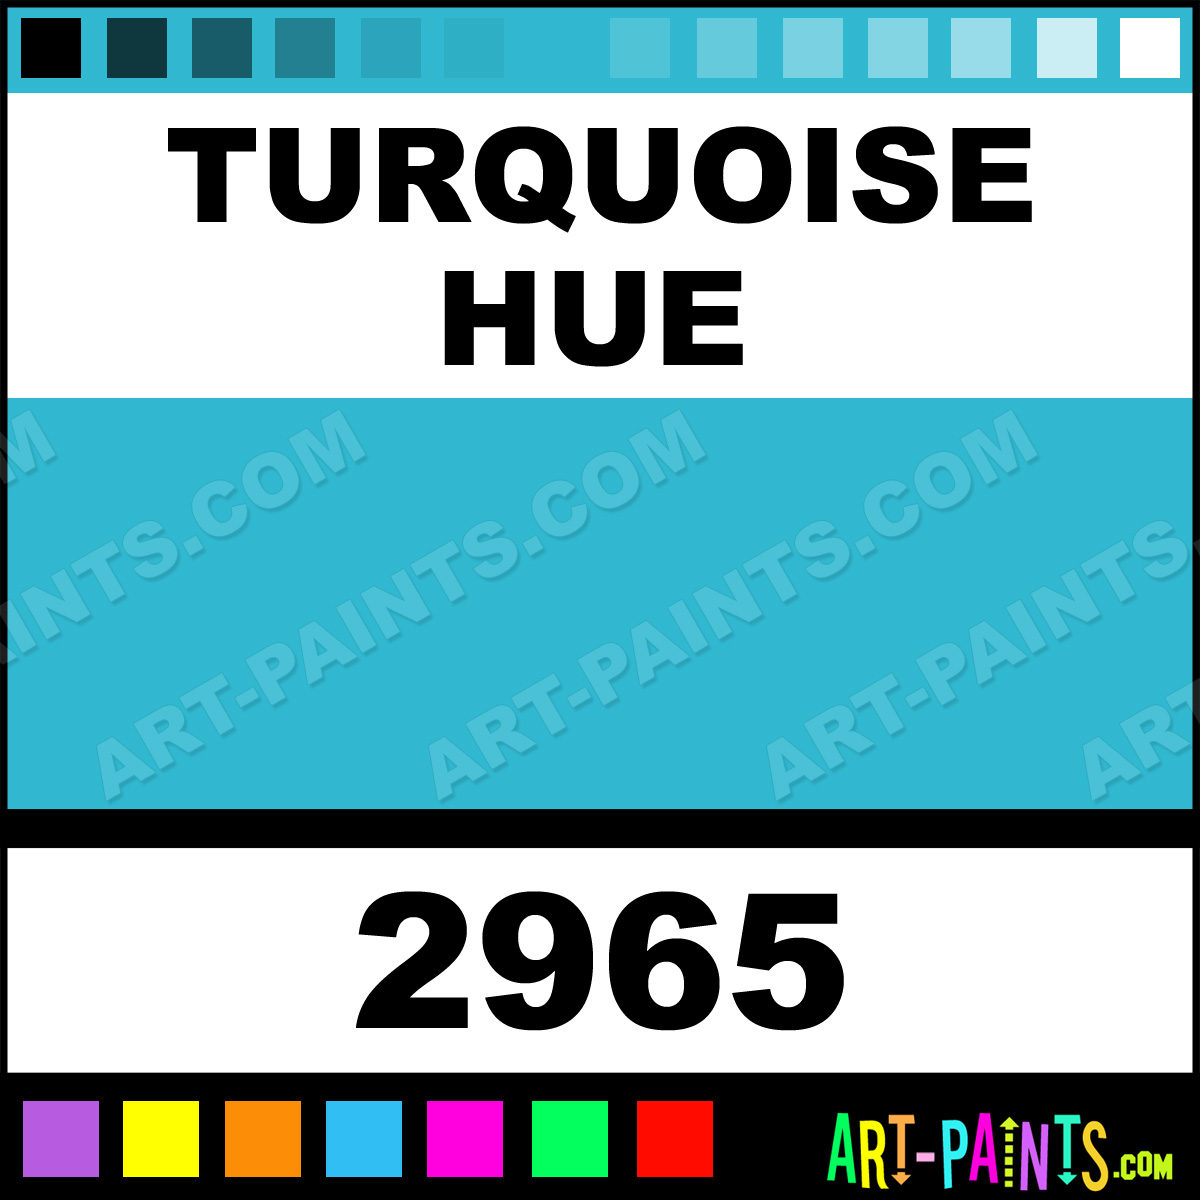 Chevelle blue metallic paint car pictures car canyon - Turquoise Car And Truck Enamel Spray Paints 2965 Turquoise